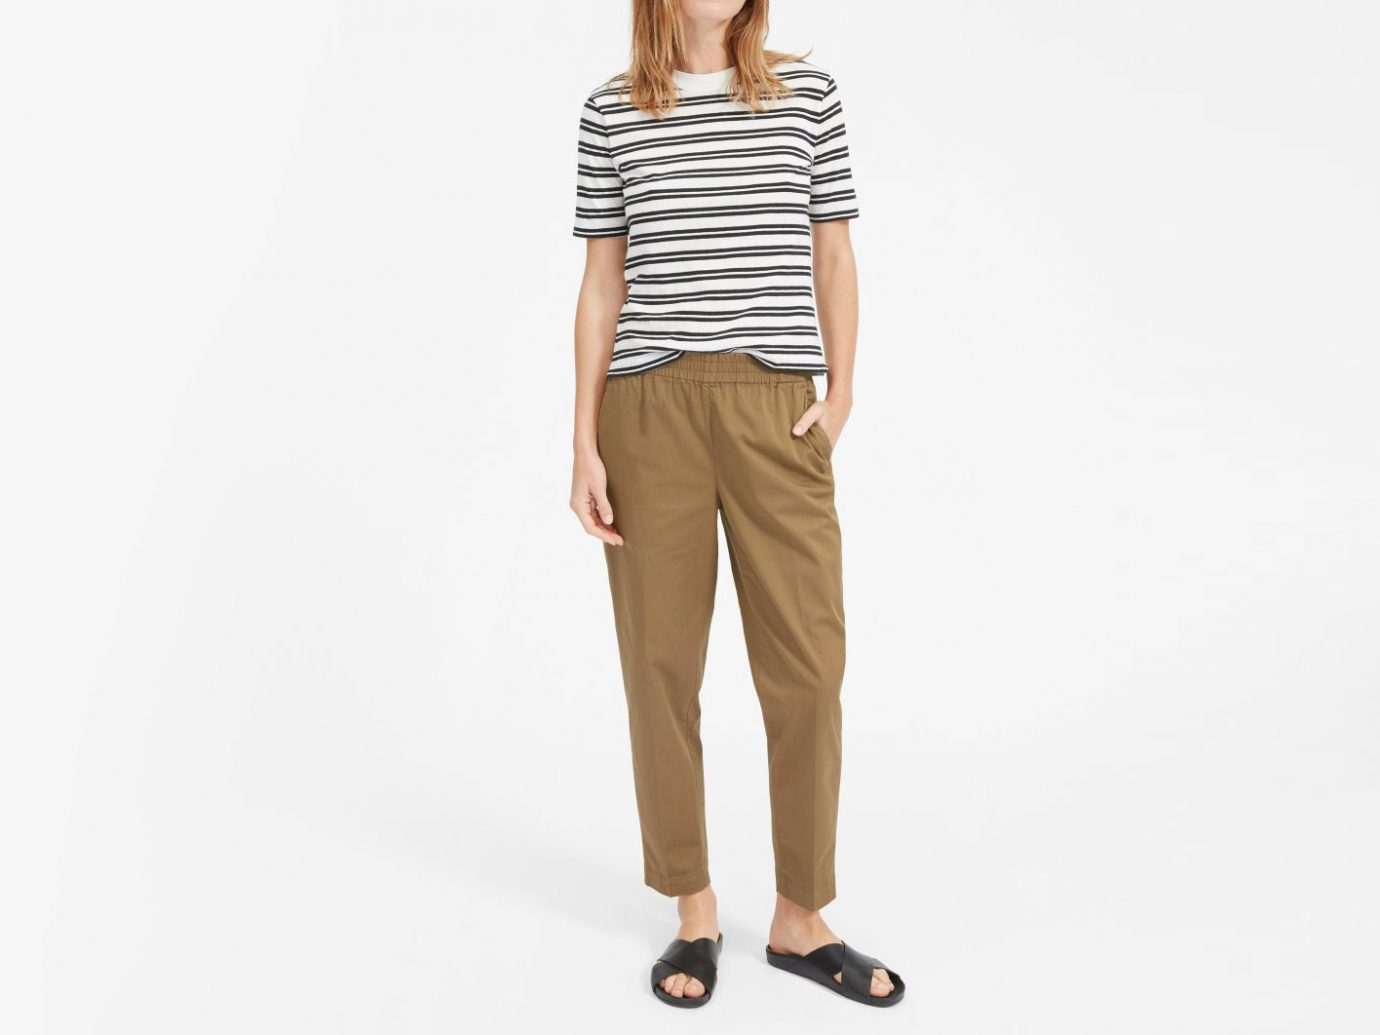 Everlane The Easy Chino